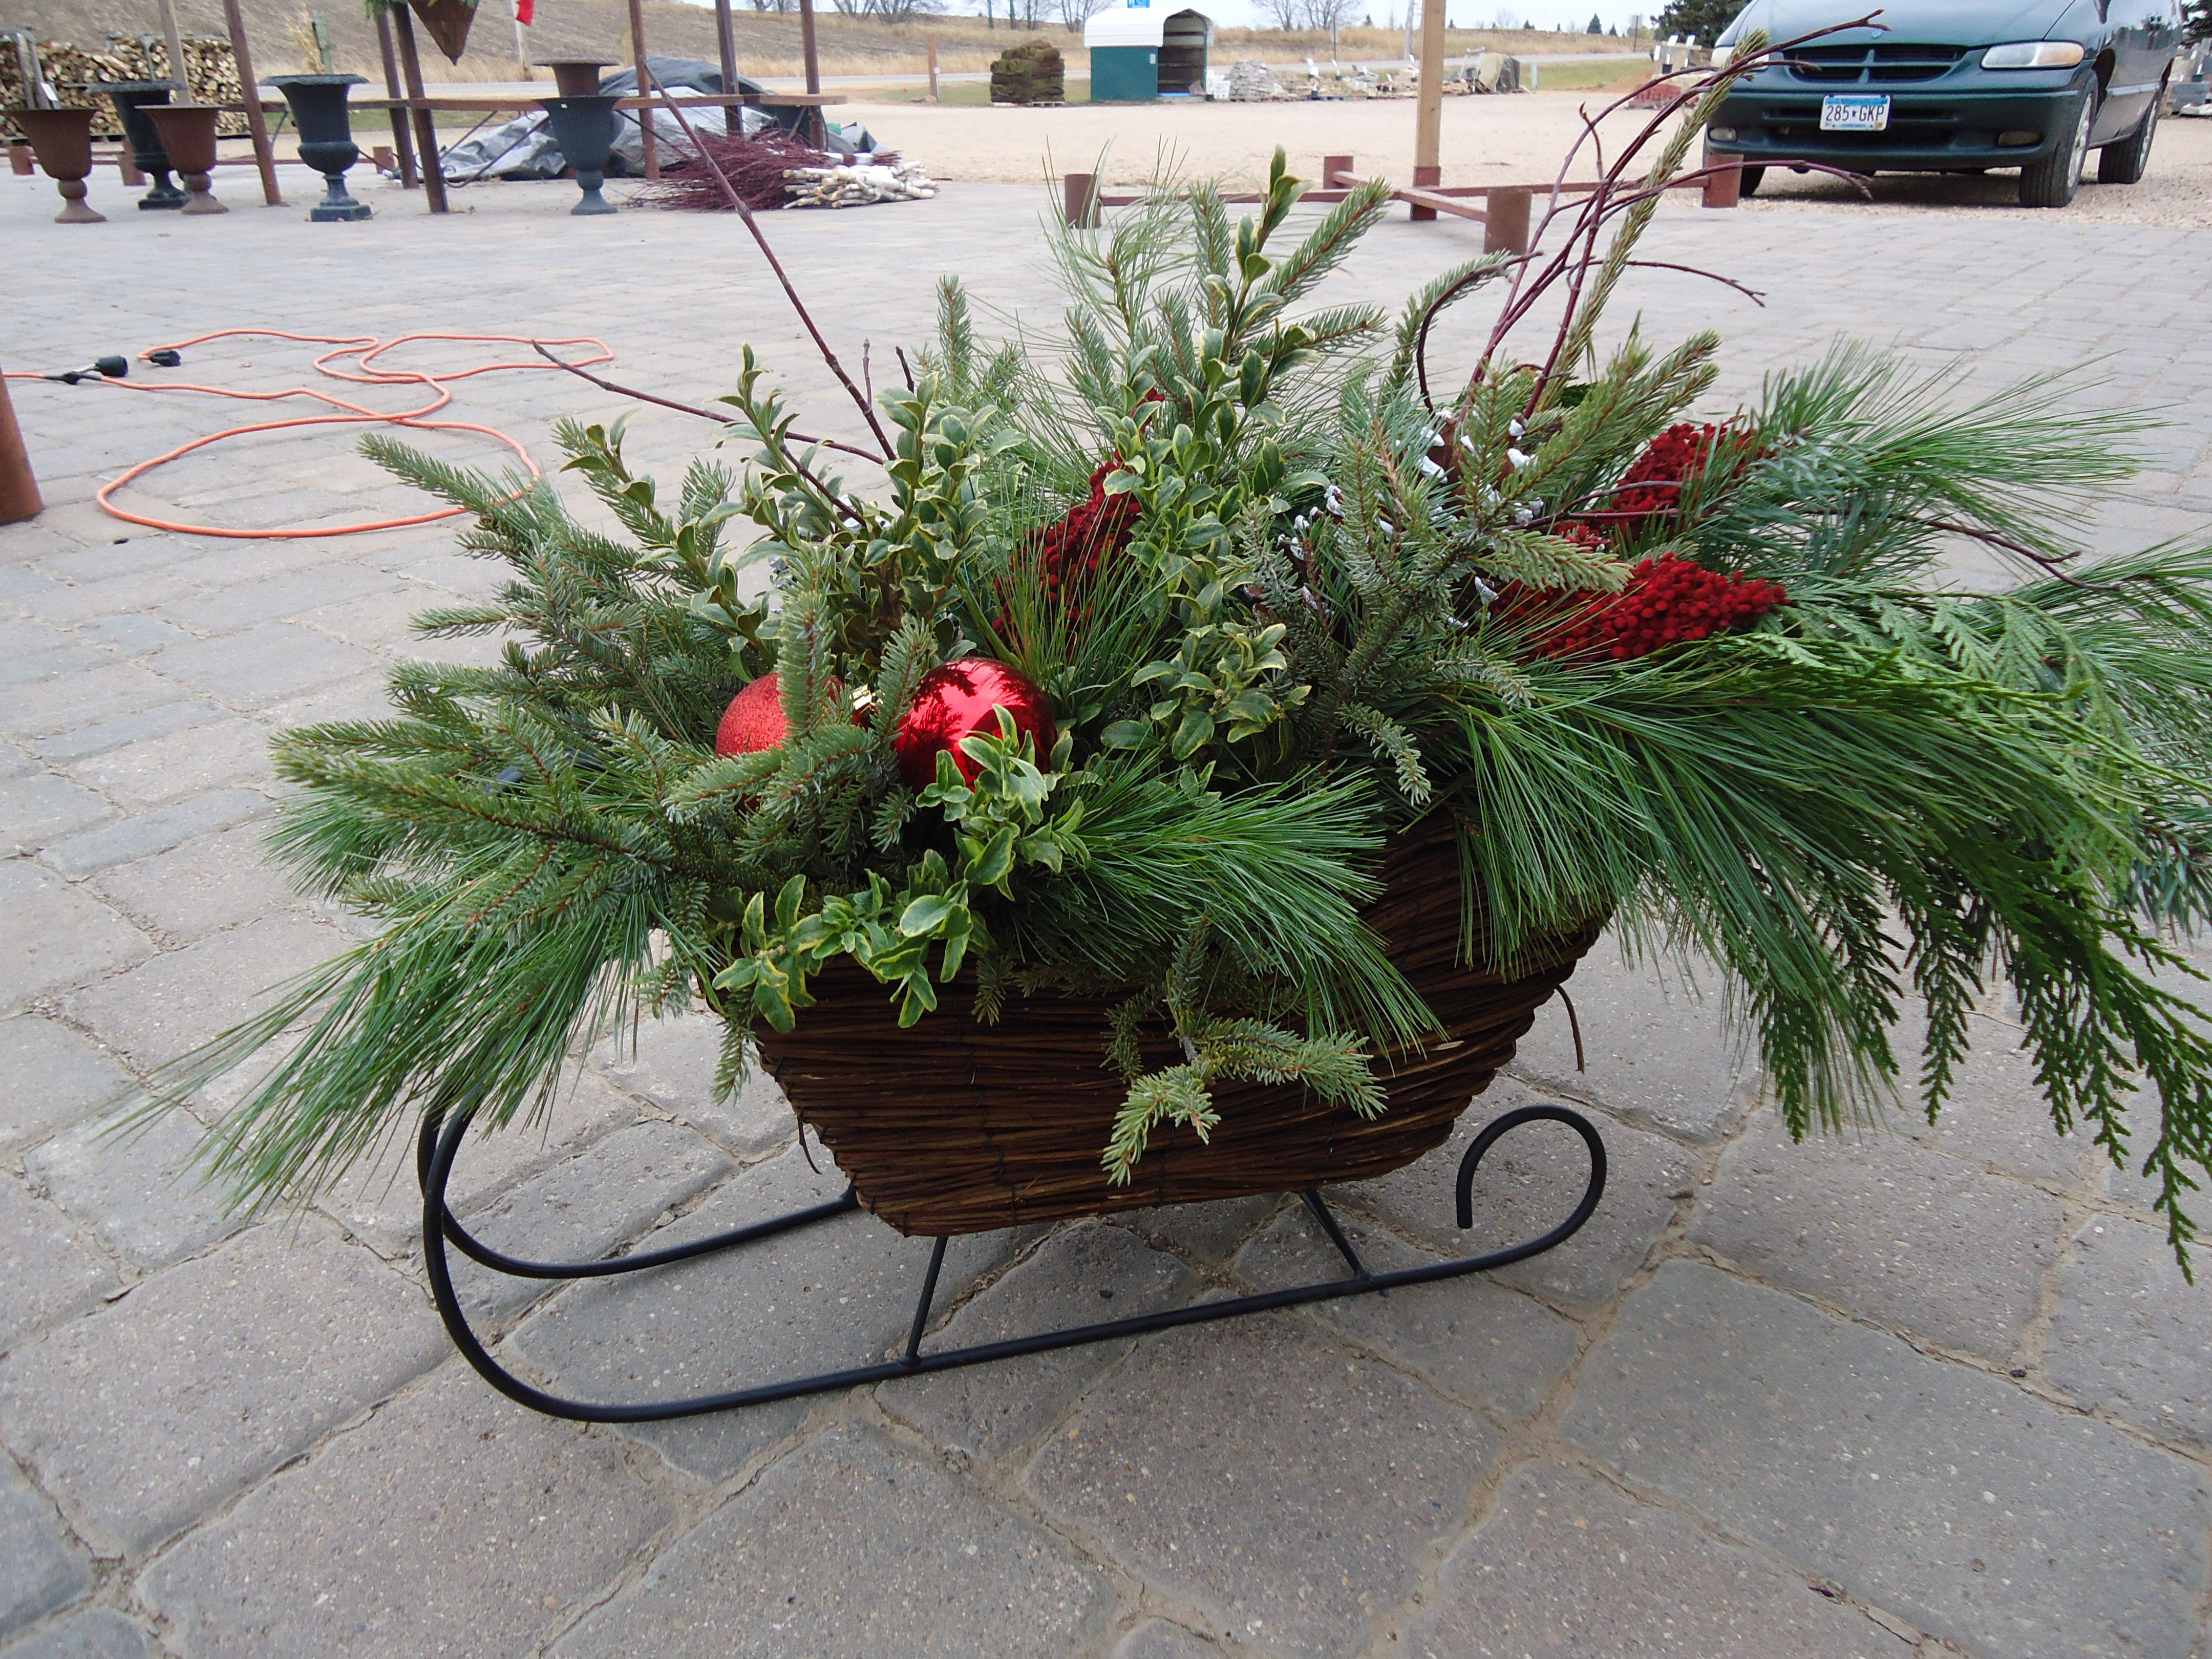 Outdoor Christmas Sleigh For Sale.Outdoor Christmas Planter Sleigh Found One At A Yard Sale